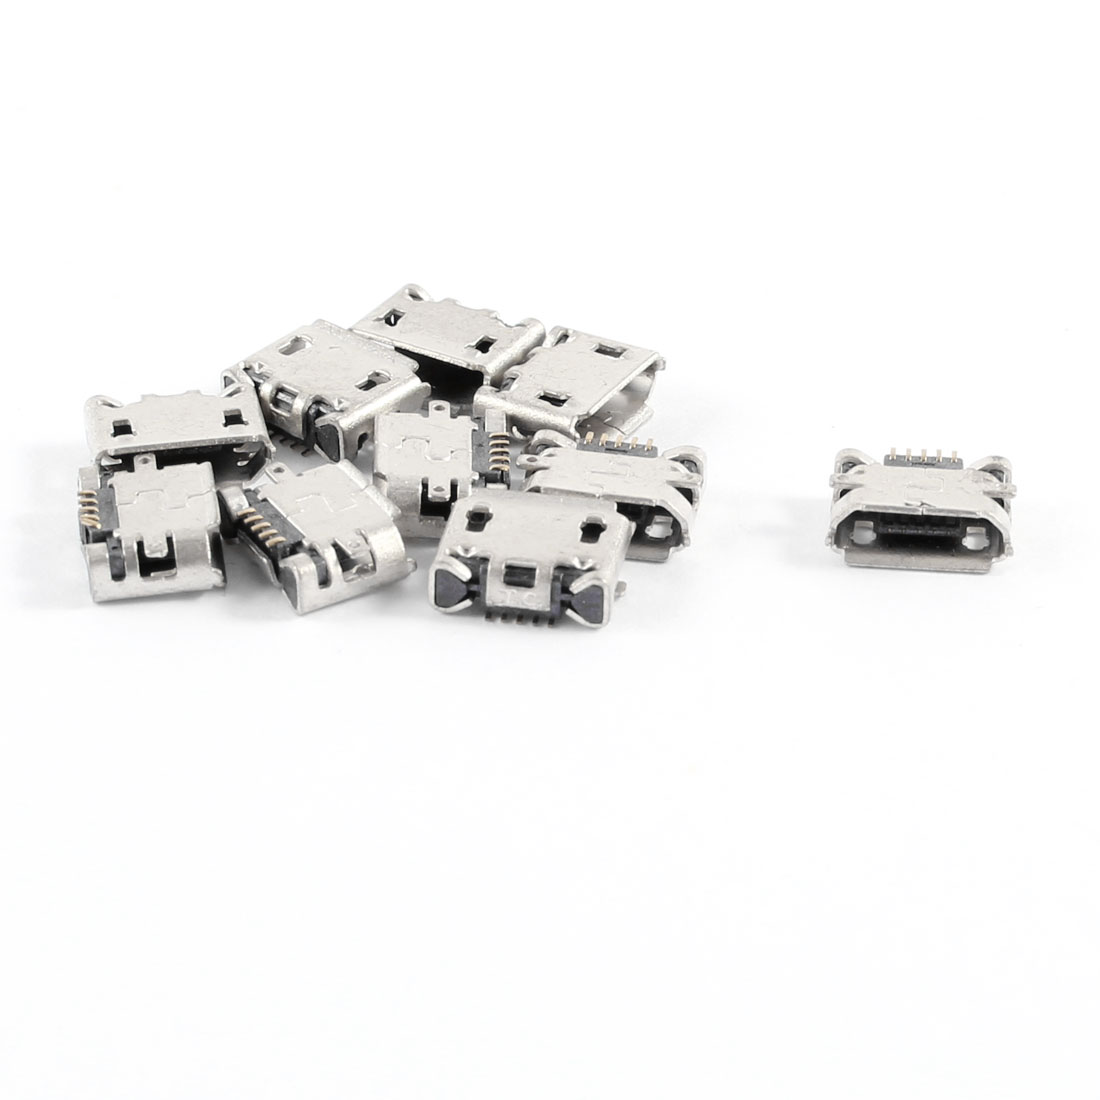 10 Pcs Type B Micro 5 Pin USB Female Mount Jack Port Socket for Cell Phone